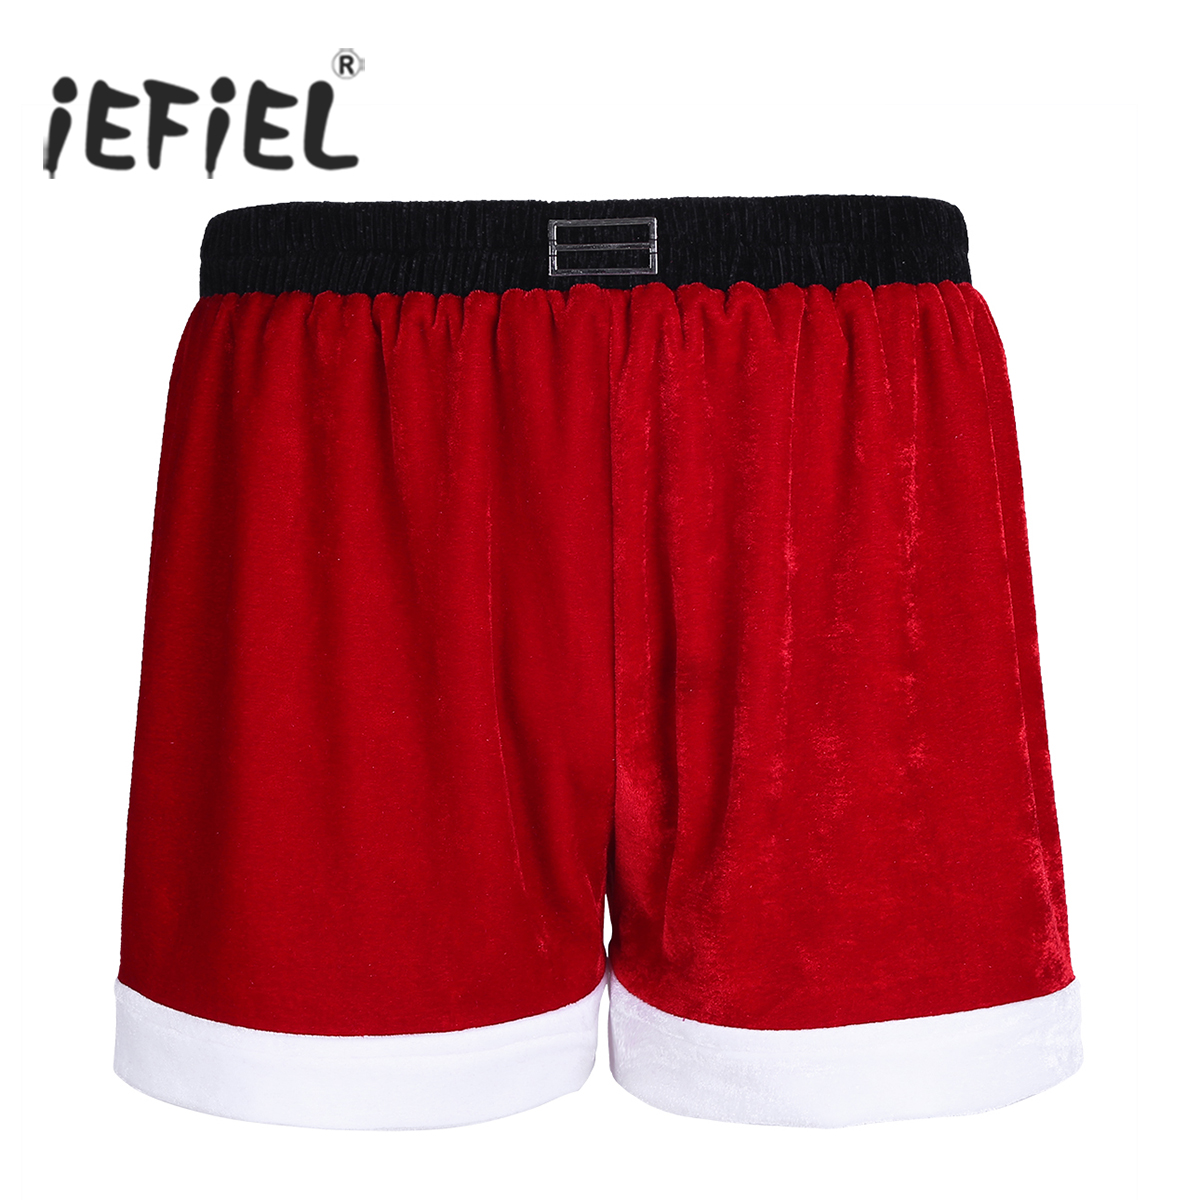 iEFiEL Red Mens Flannel Santa Claus Costumes white flannel trimmings Holiday Boxer Shorts for Christmas Party Male Shorts